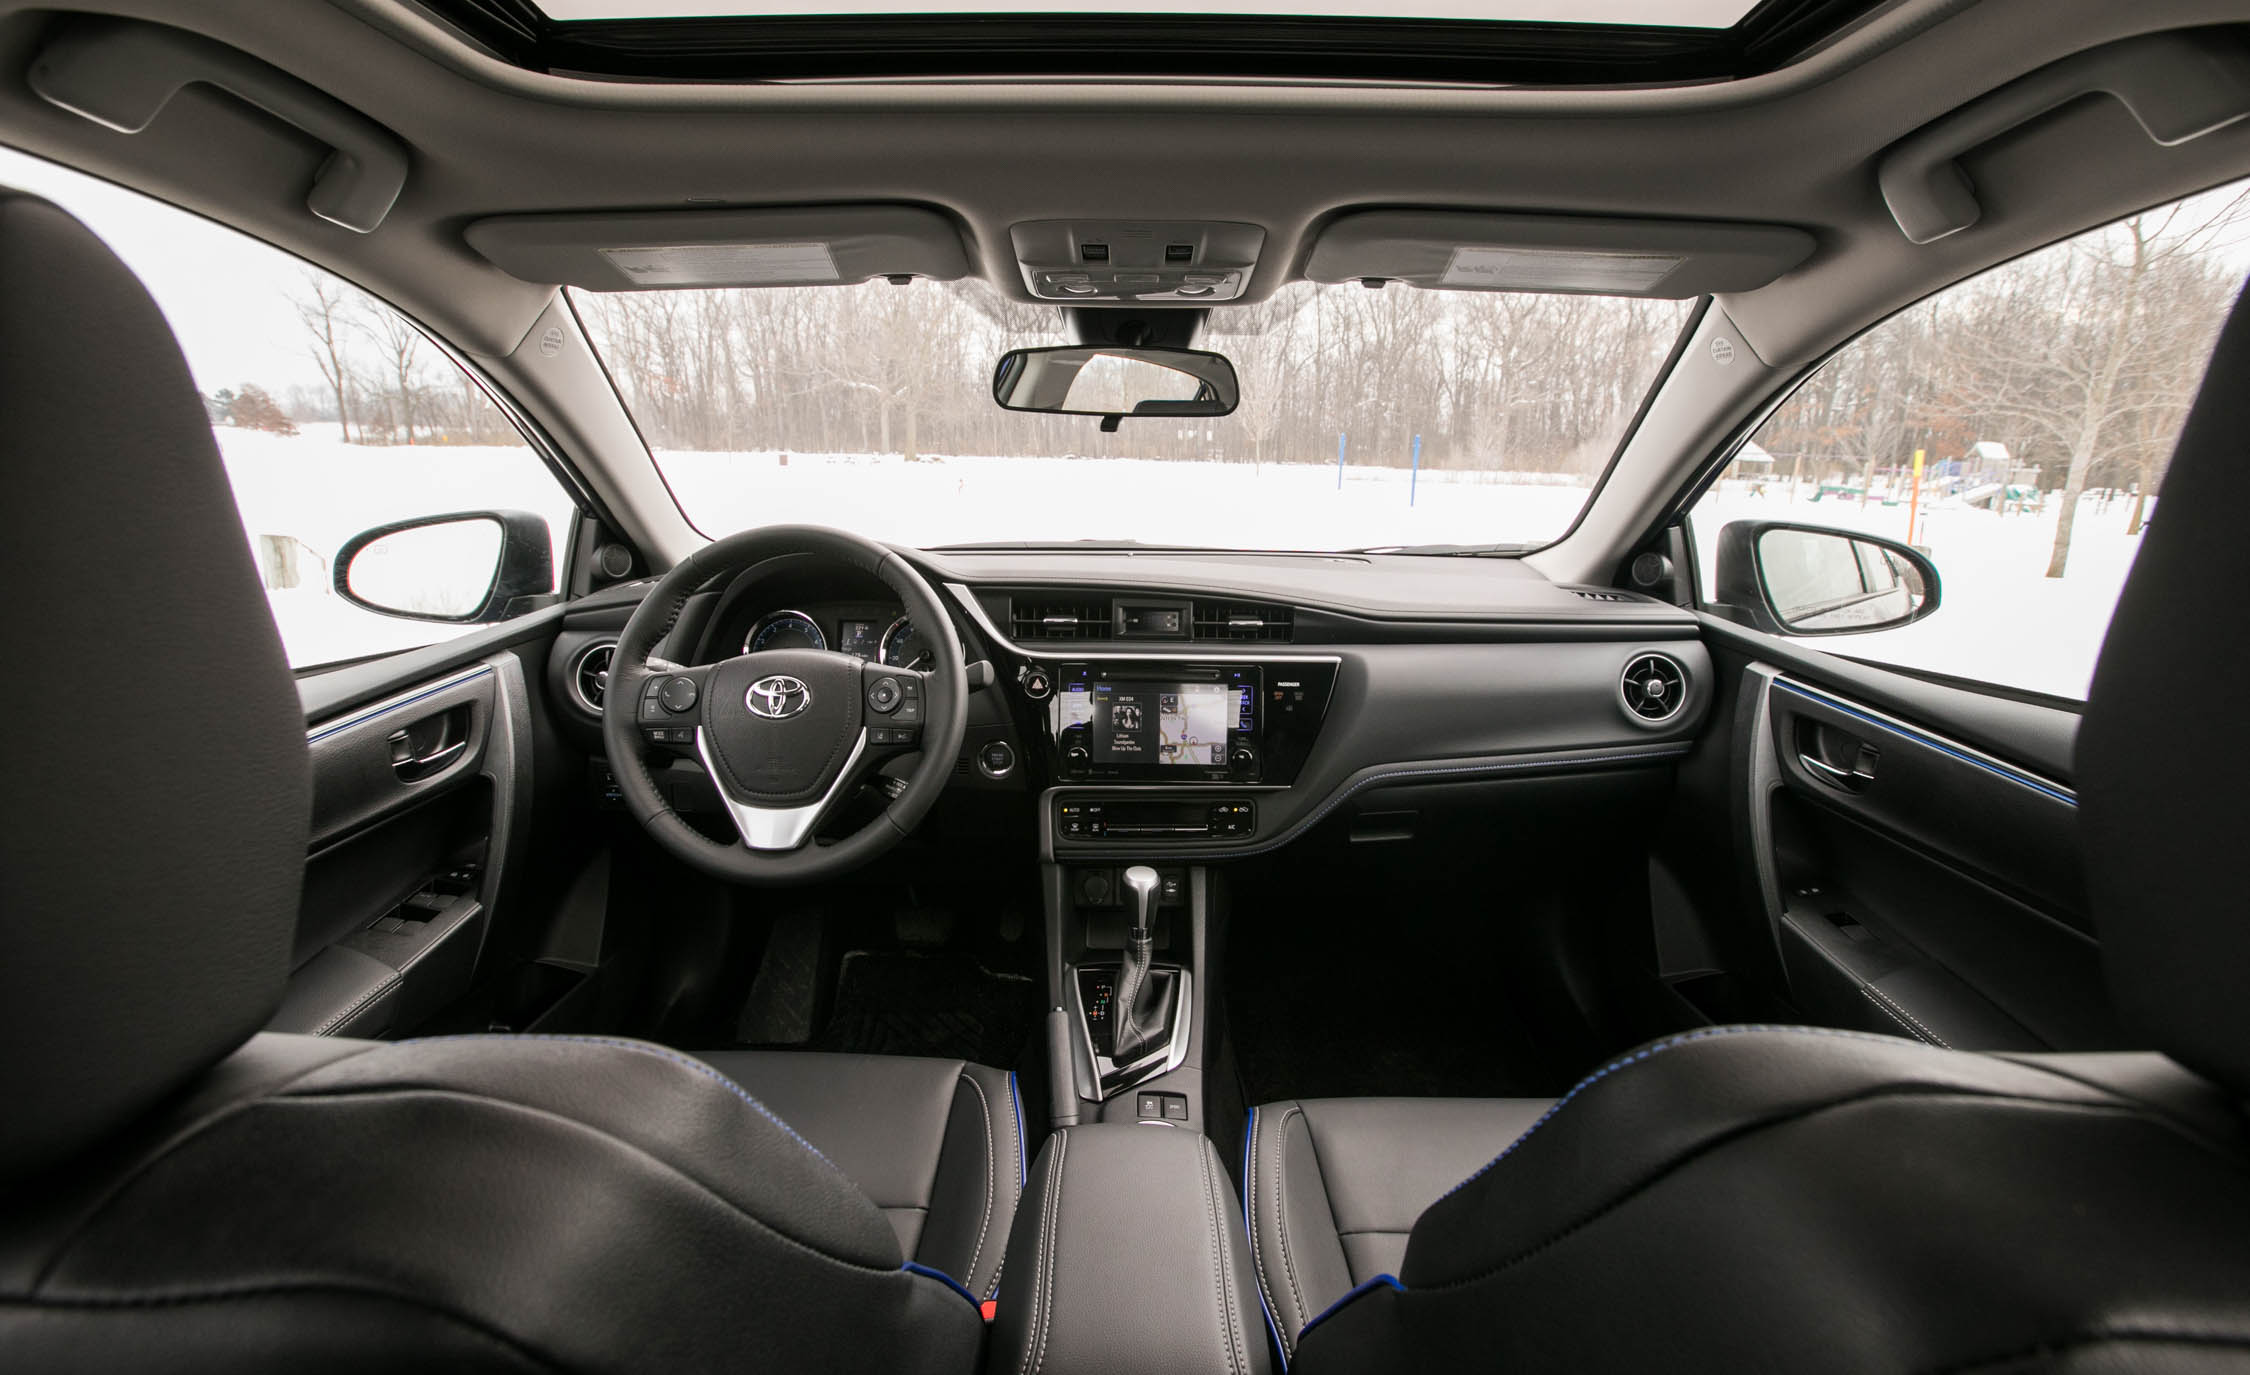 2017 Toyota Corolla XSE Interior (View 30 of 75)